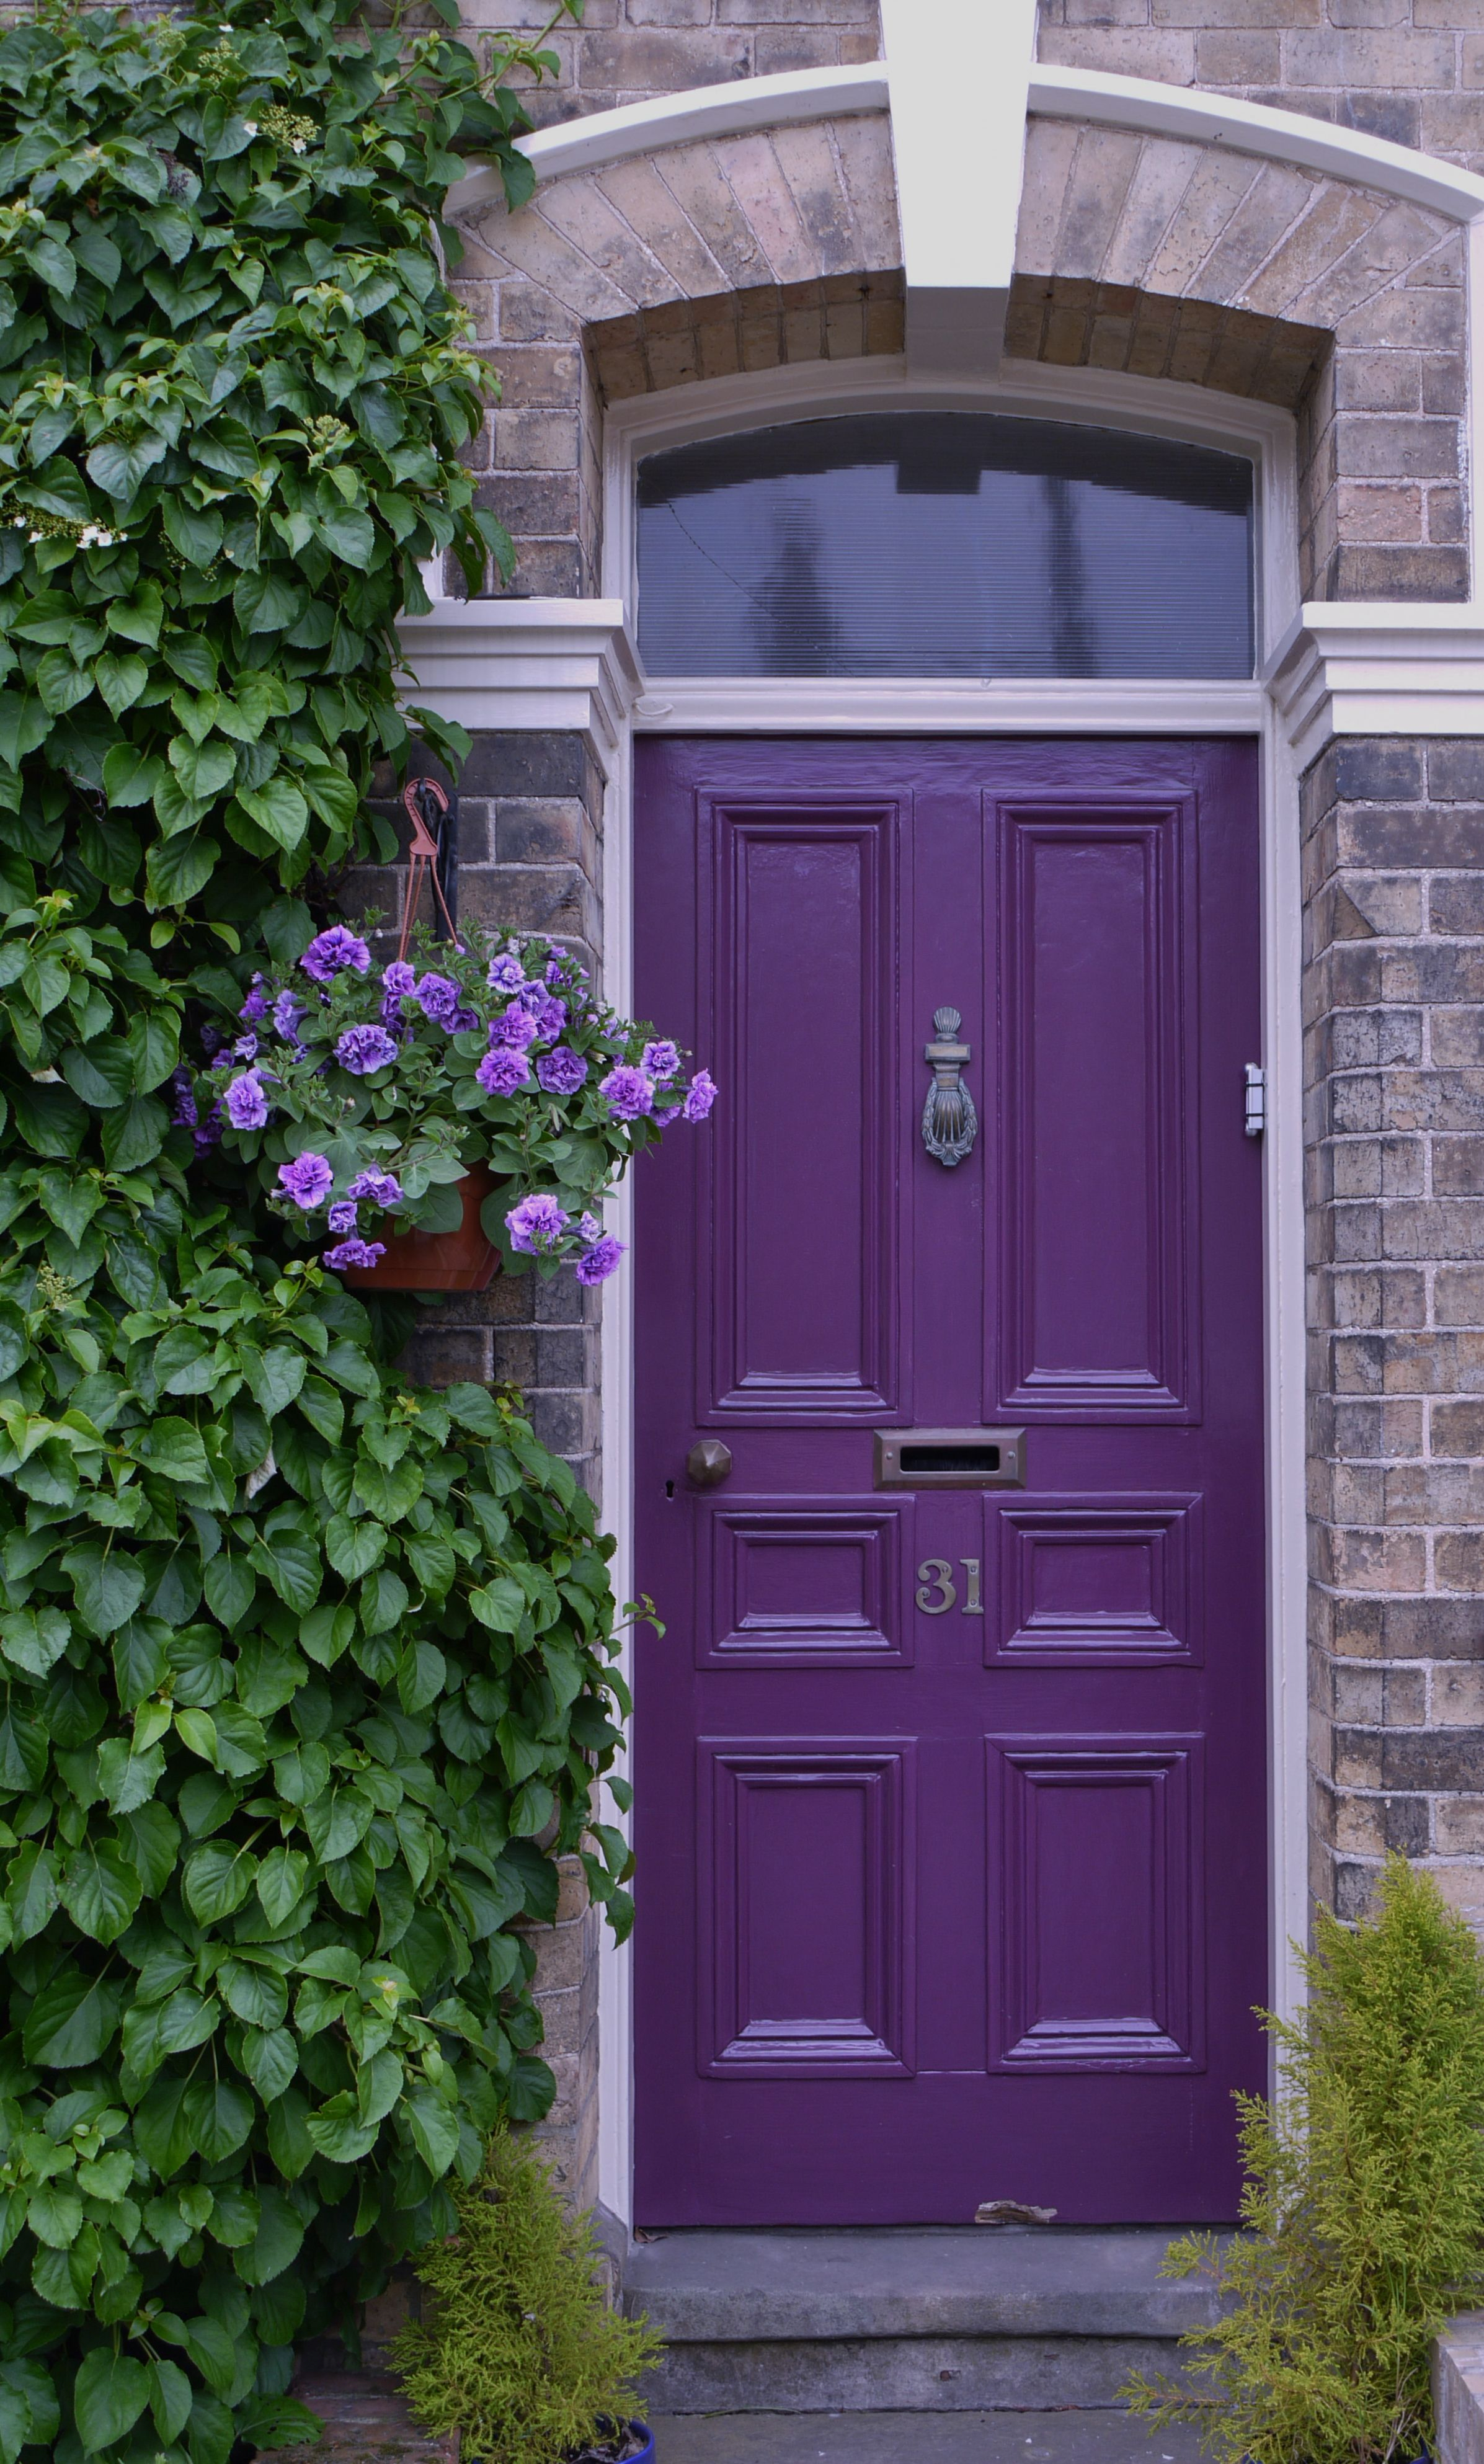 3973 #4C2F61 So Want A Purple Front Door. A Passion For Purple Pinterest wallpaper Purple Front Doors 47052393